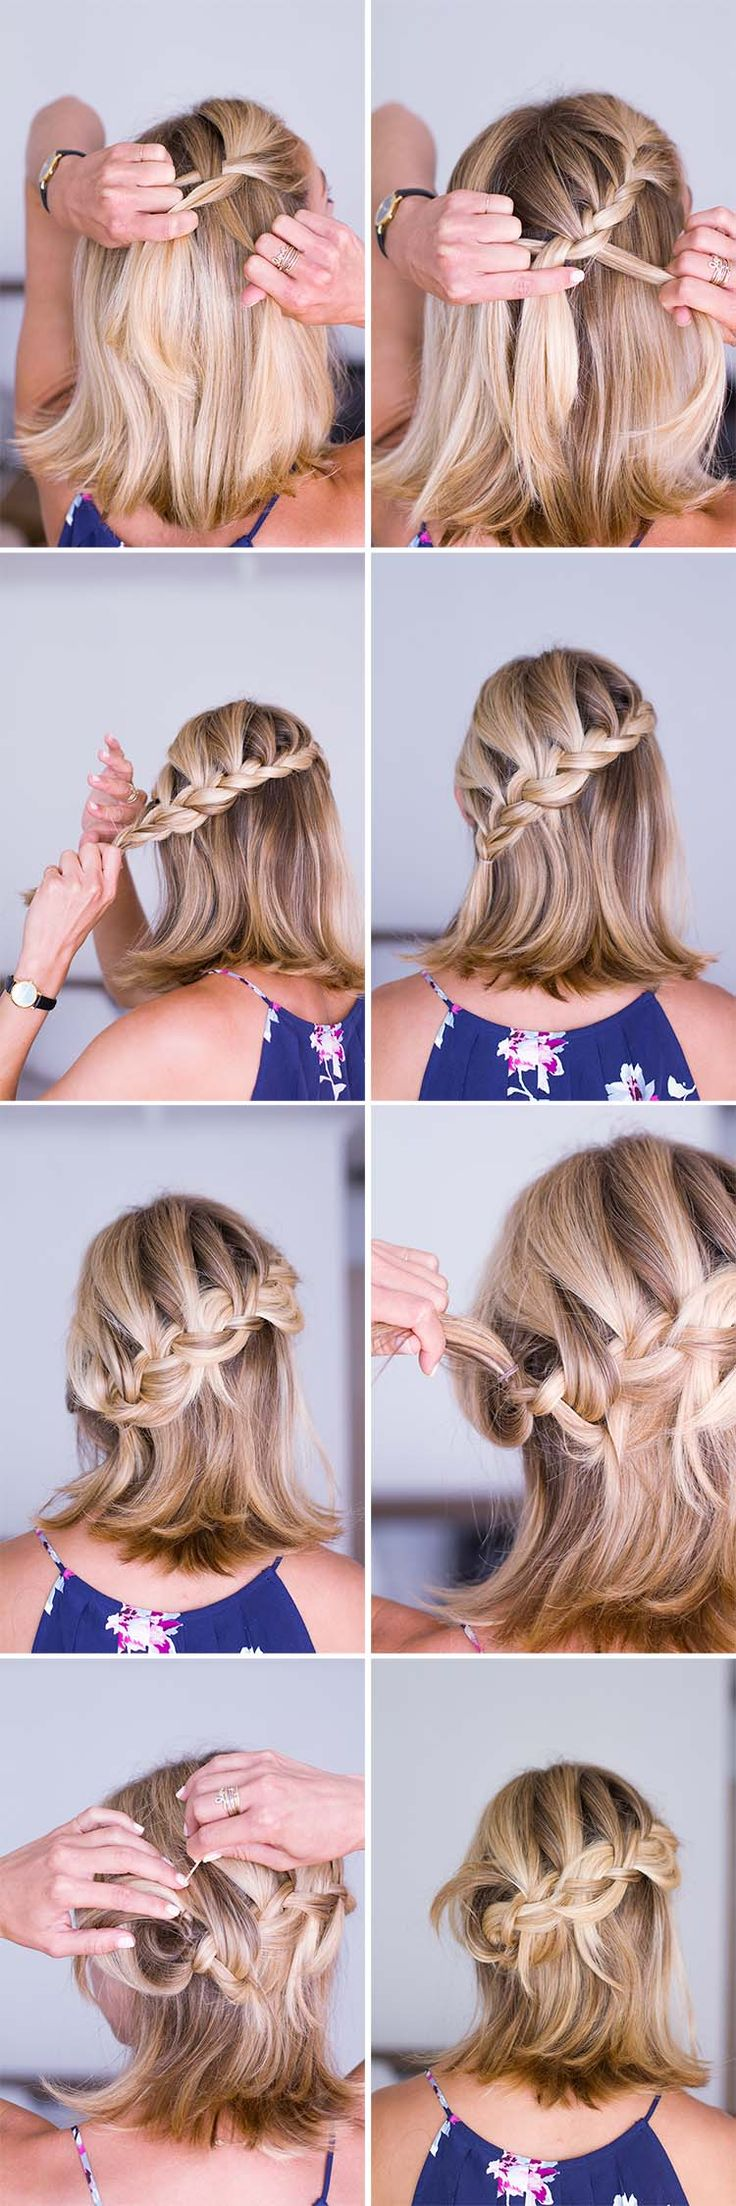 short hair braid tutorial + half-up hairstyle via anne sage